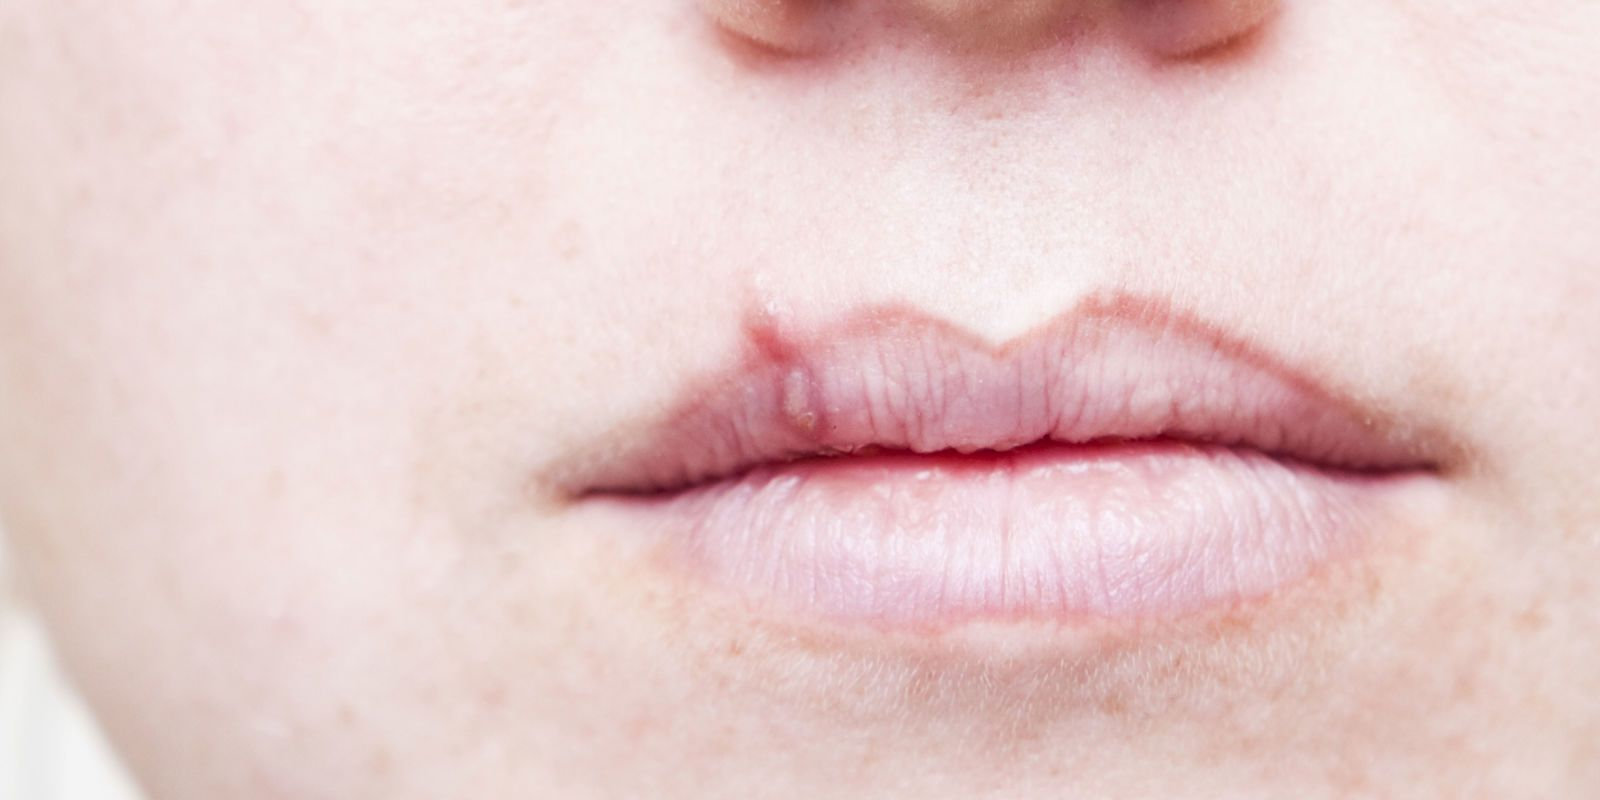 Cold sores  Netdoctor  Remedies for Herpes  Pinterest